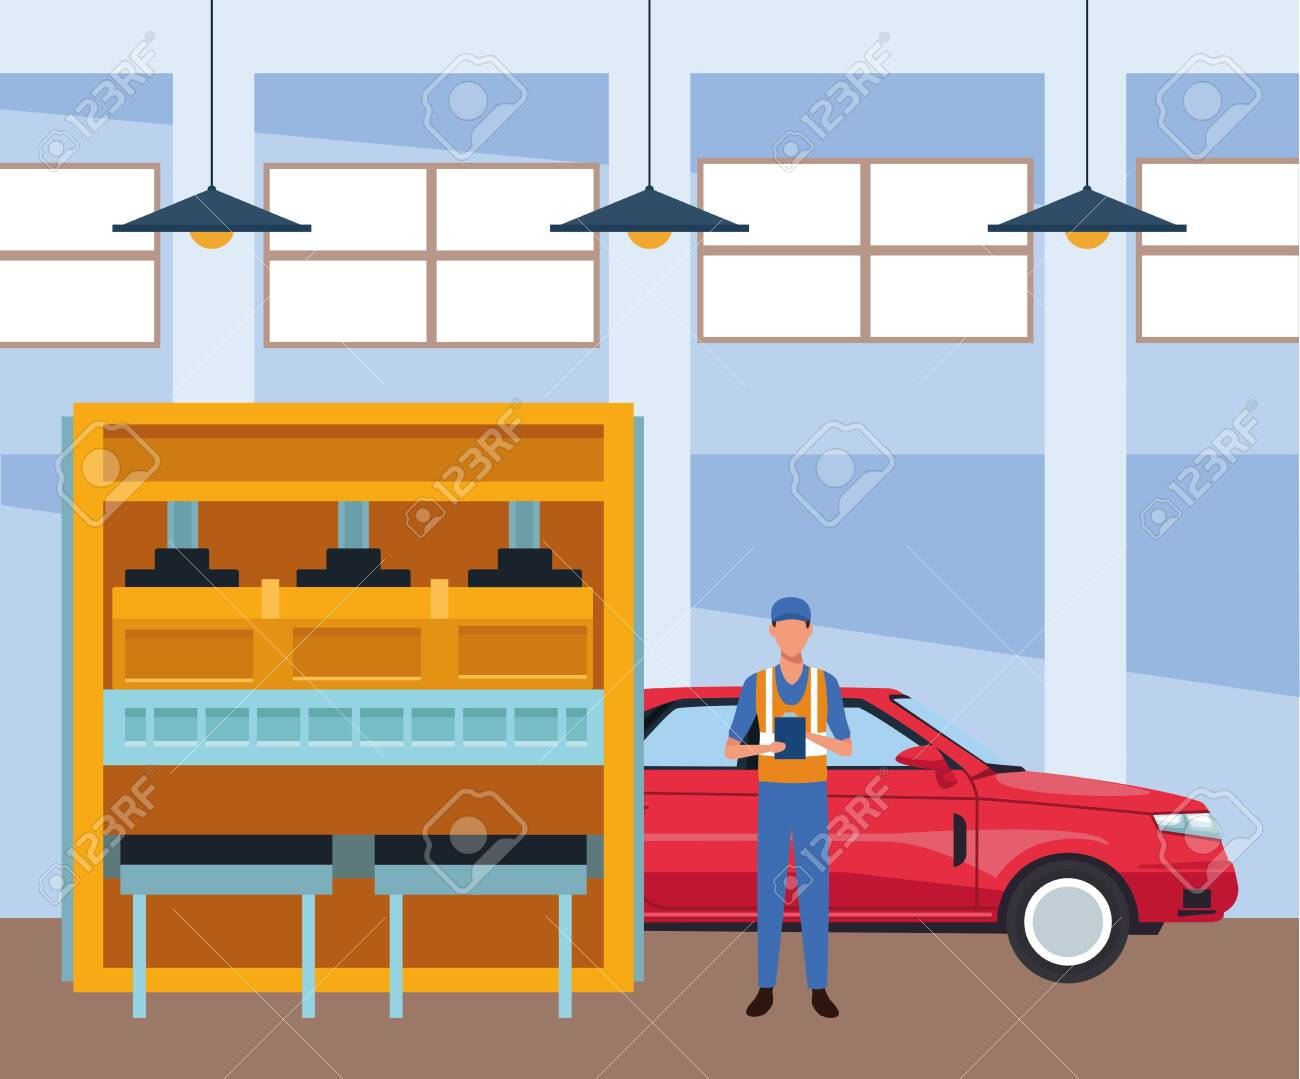 Car Repair Shop Scenery With Mechanic Machine And Red Car Colorful Royalty Free Cliparts Vectors And Stock Illustration Image 139891274